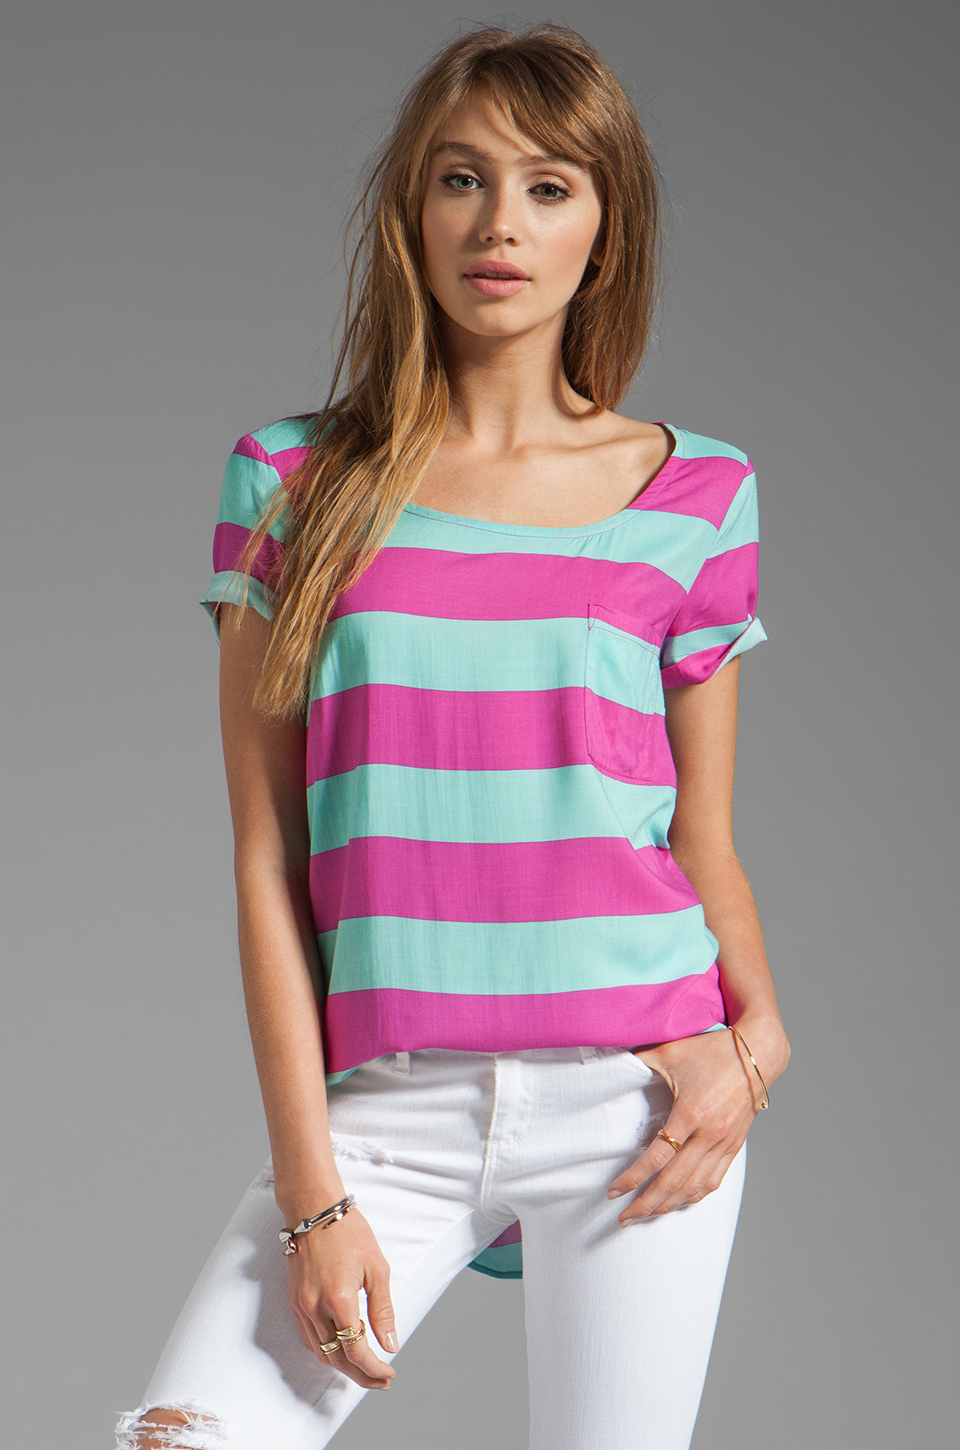 Splendid Magnolia Stripe Top in Waterfall/Plum